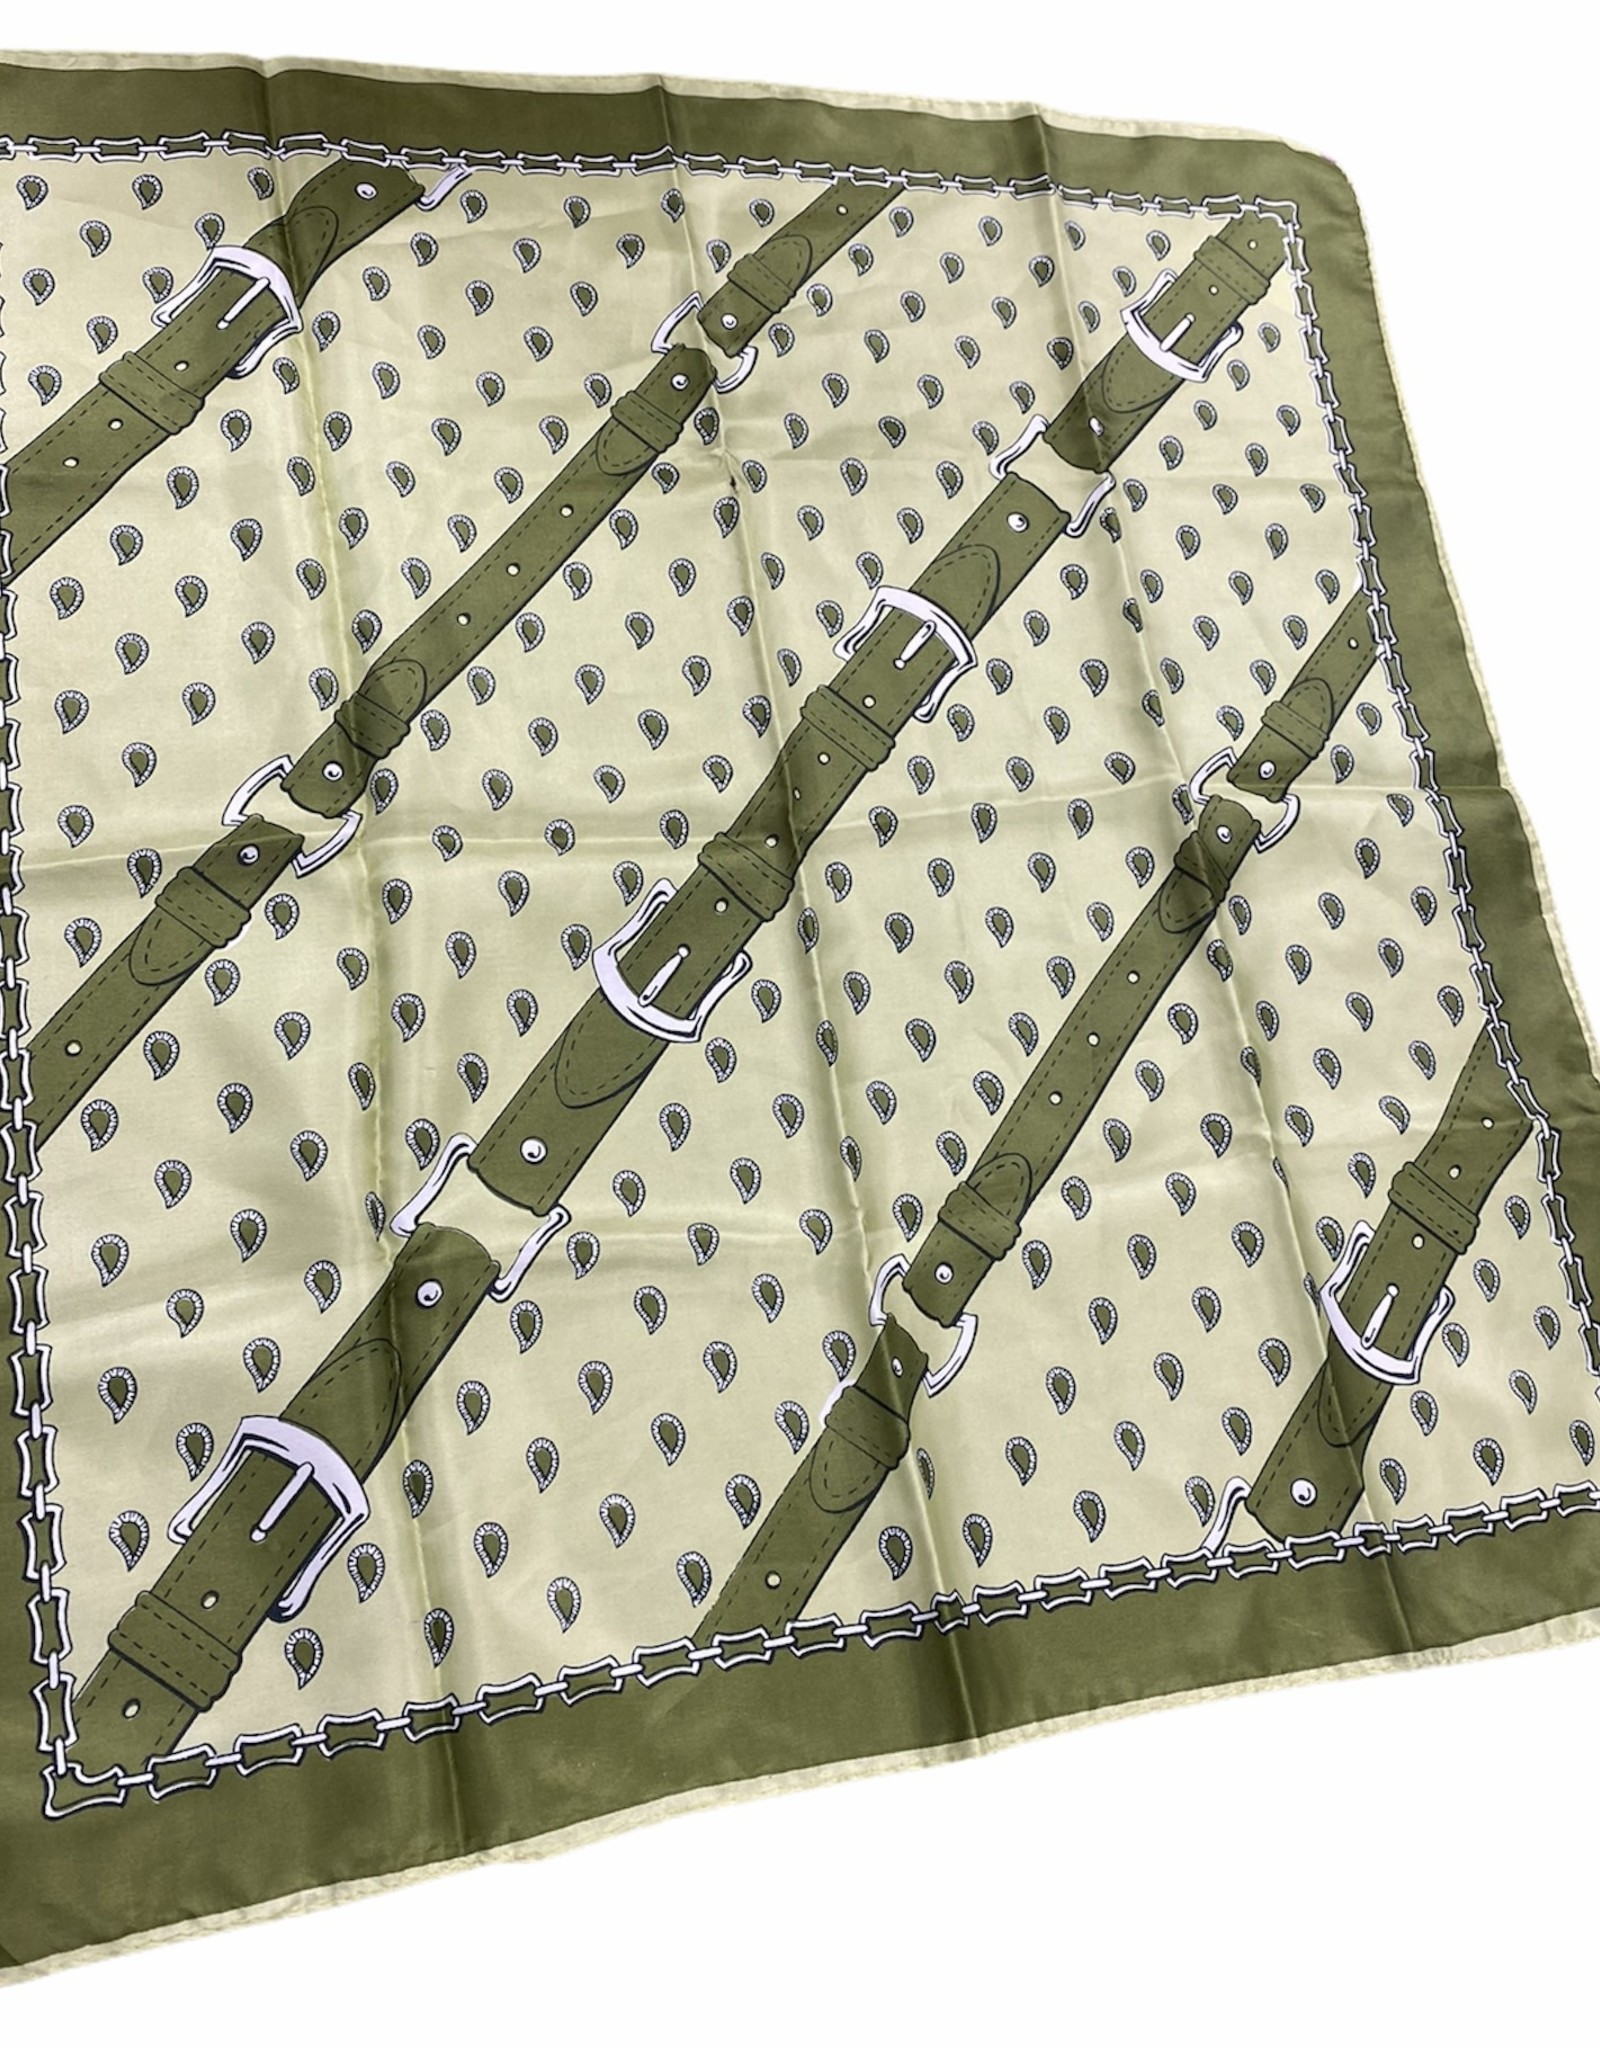 Fashion scarf green with buckle detail